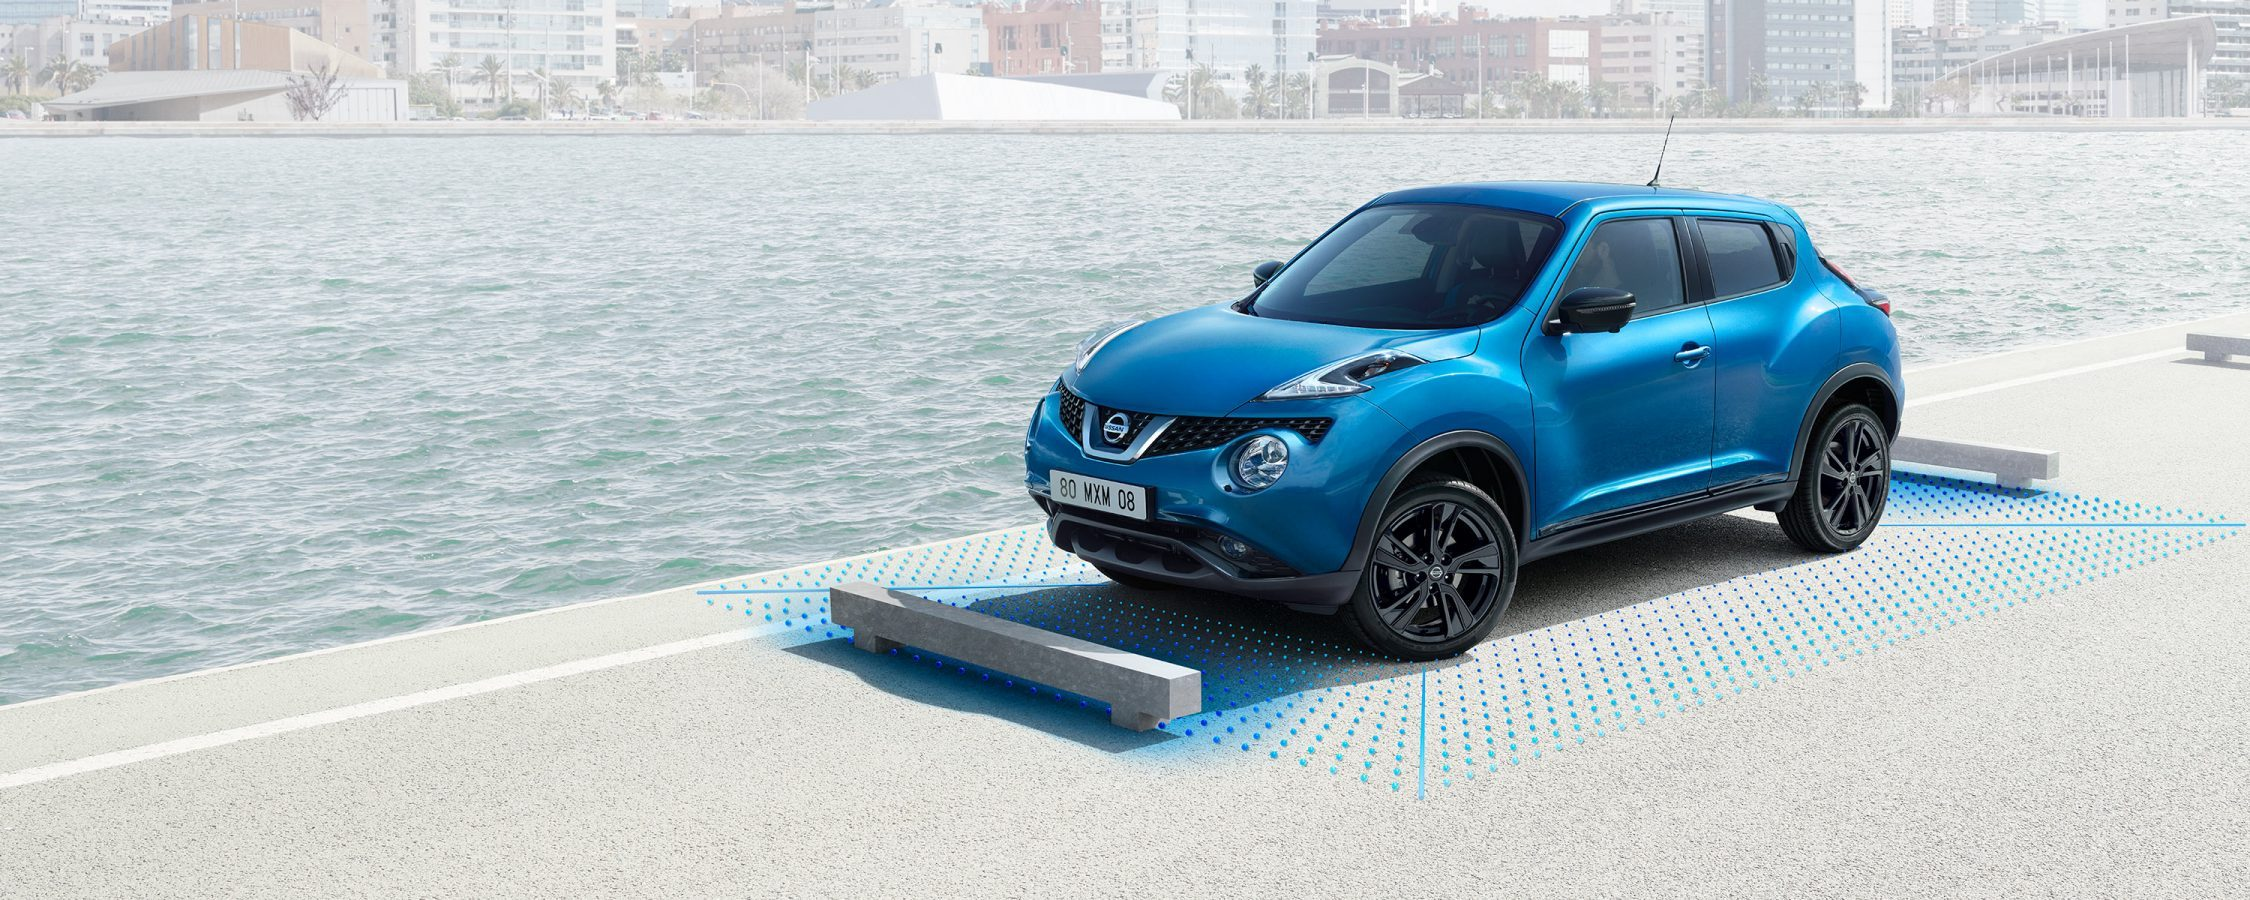 2018 Nissan JUKE 3/4 front parking with around view monitor